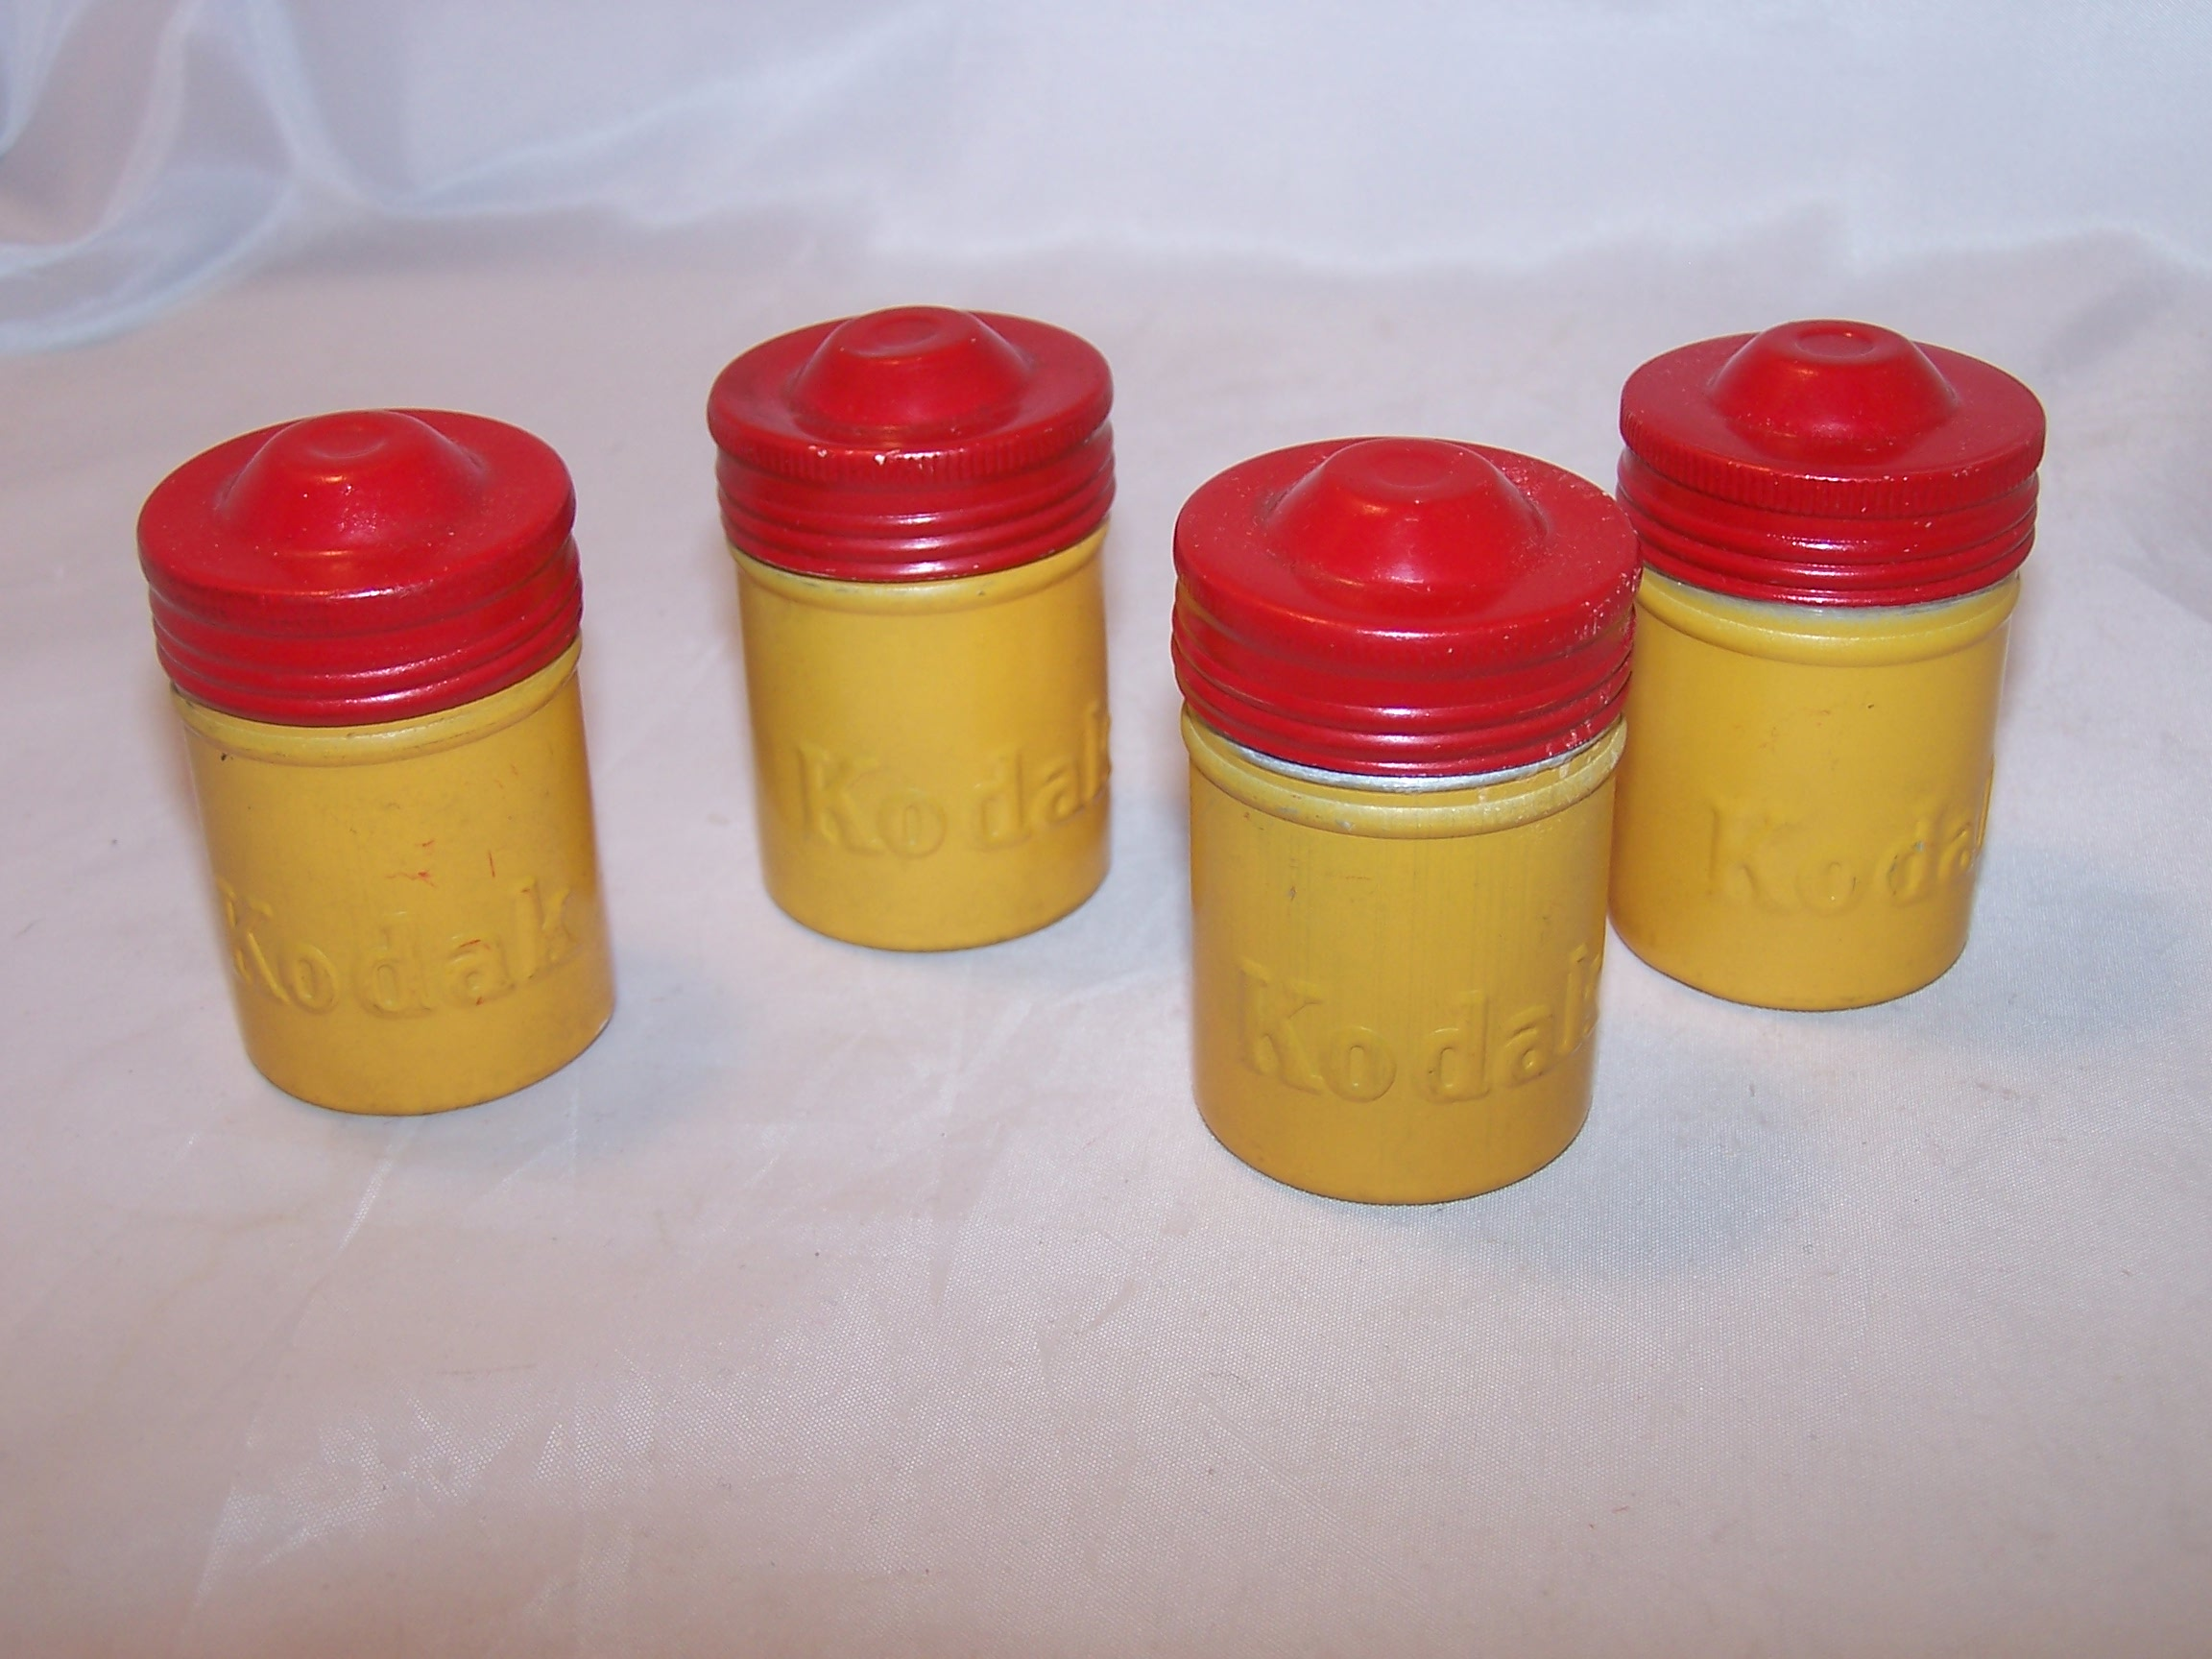 Kodak Gold and Red Canisters